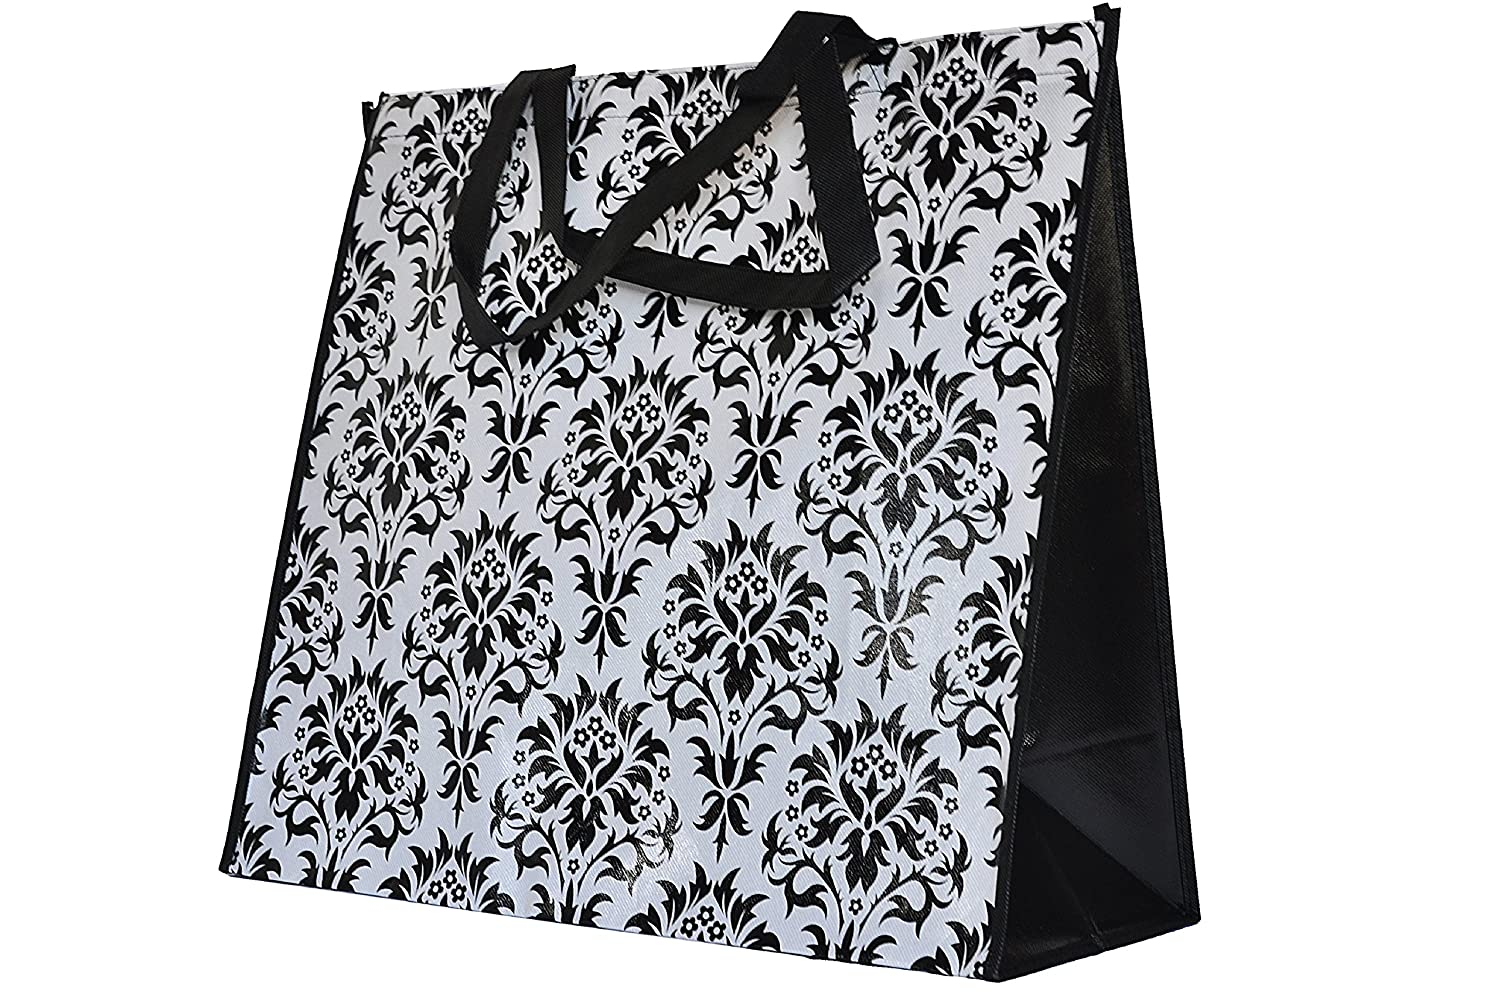 ReBagMe Extra Large Very Strong Reusable Grocery BagLaminated Recycled Shopper ToteVery Large Gift BagGreat Waterproof Beach Bag (19x17x8 Inches, Damask) by ReBagMe B012Y94NQ6  Damask 1